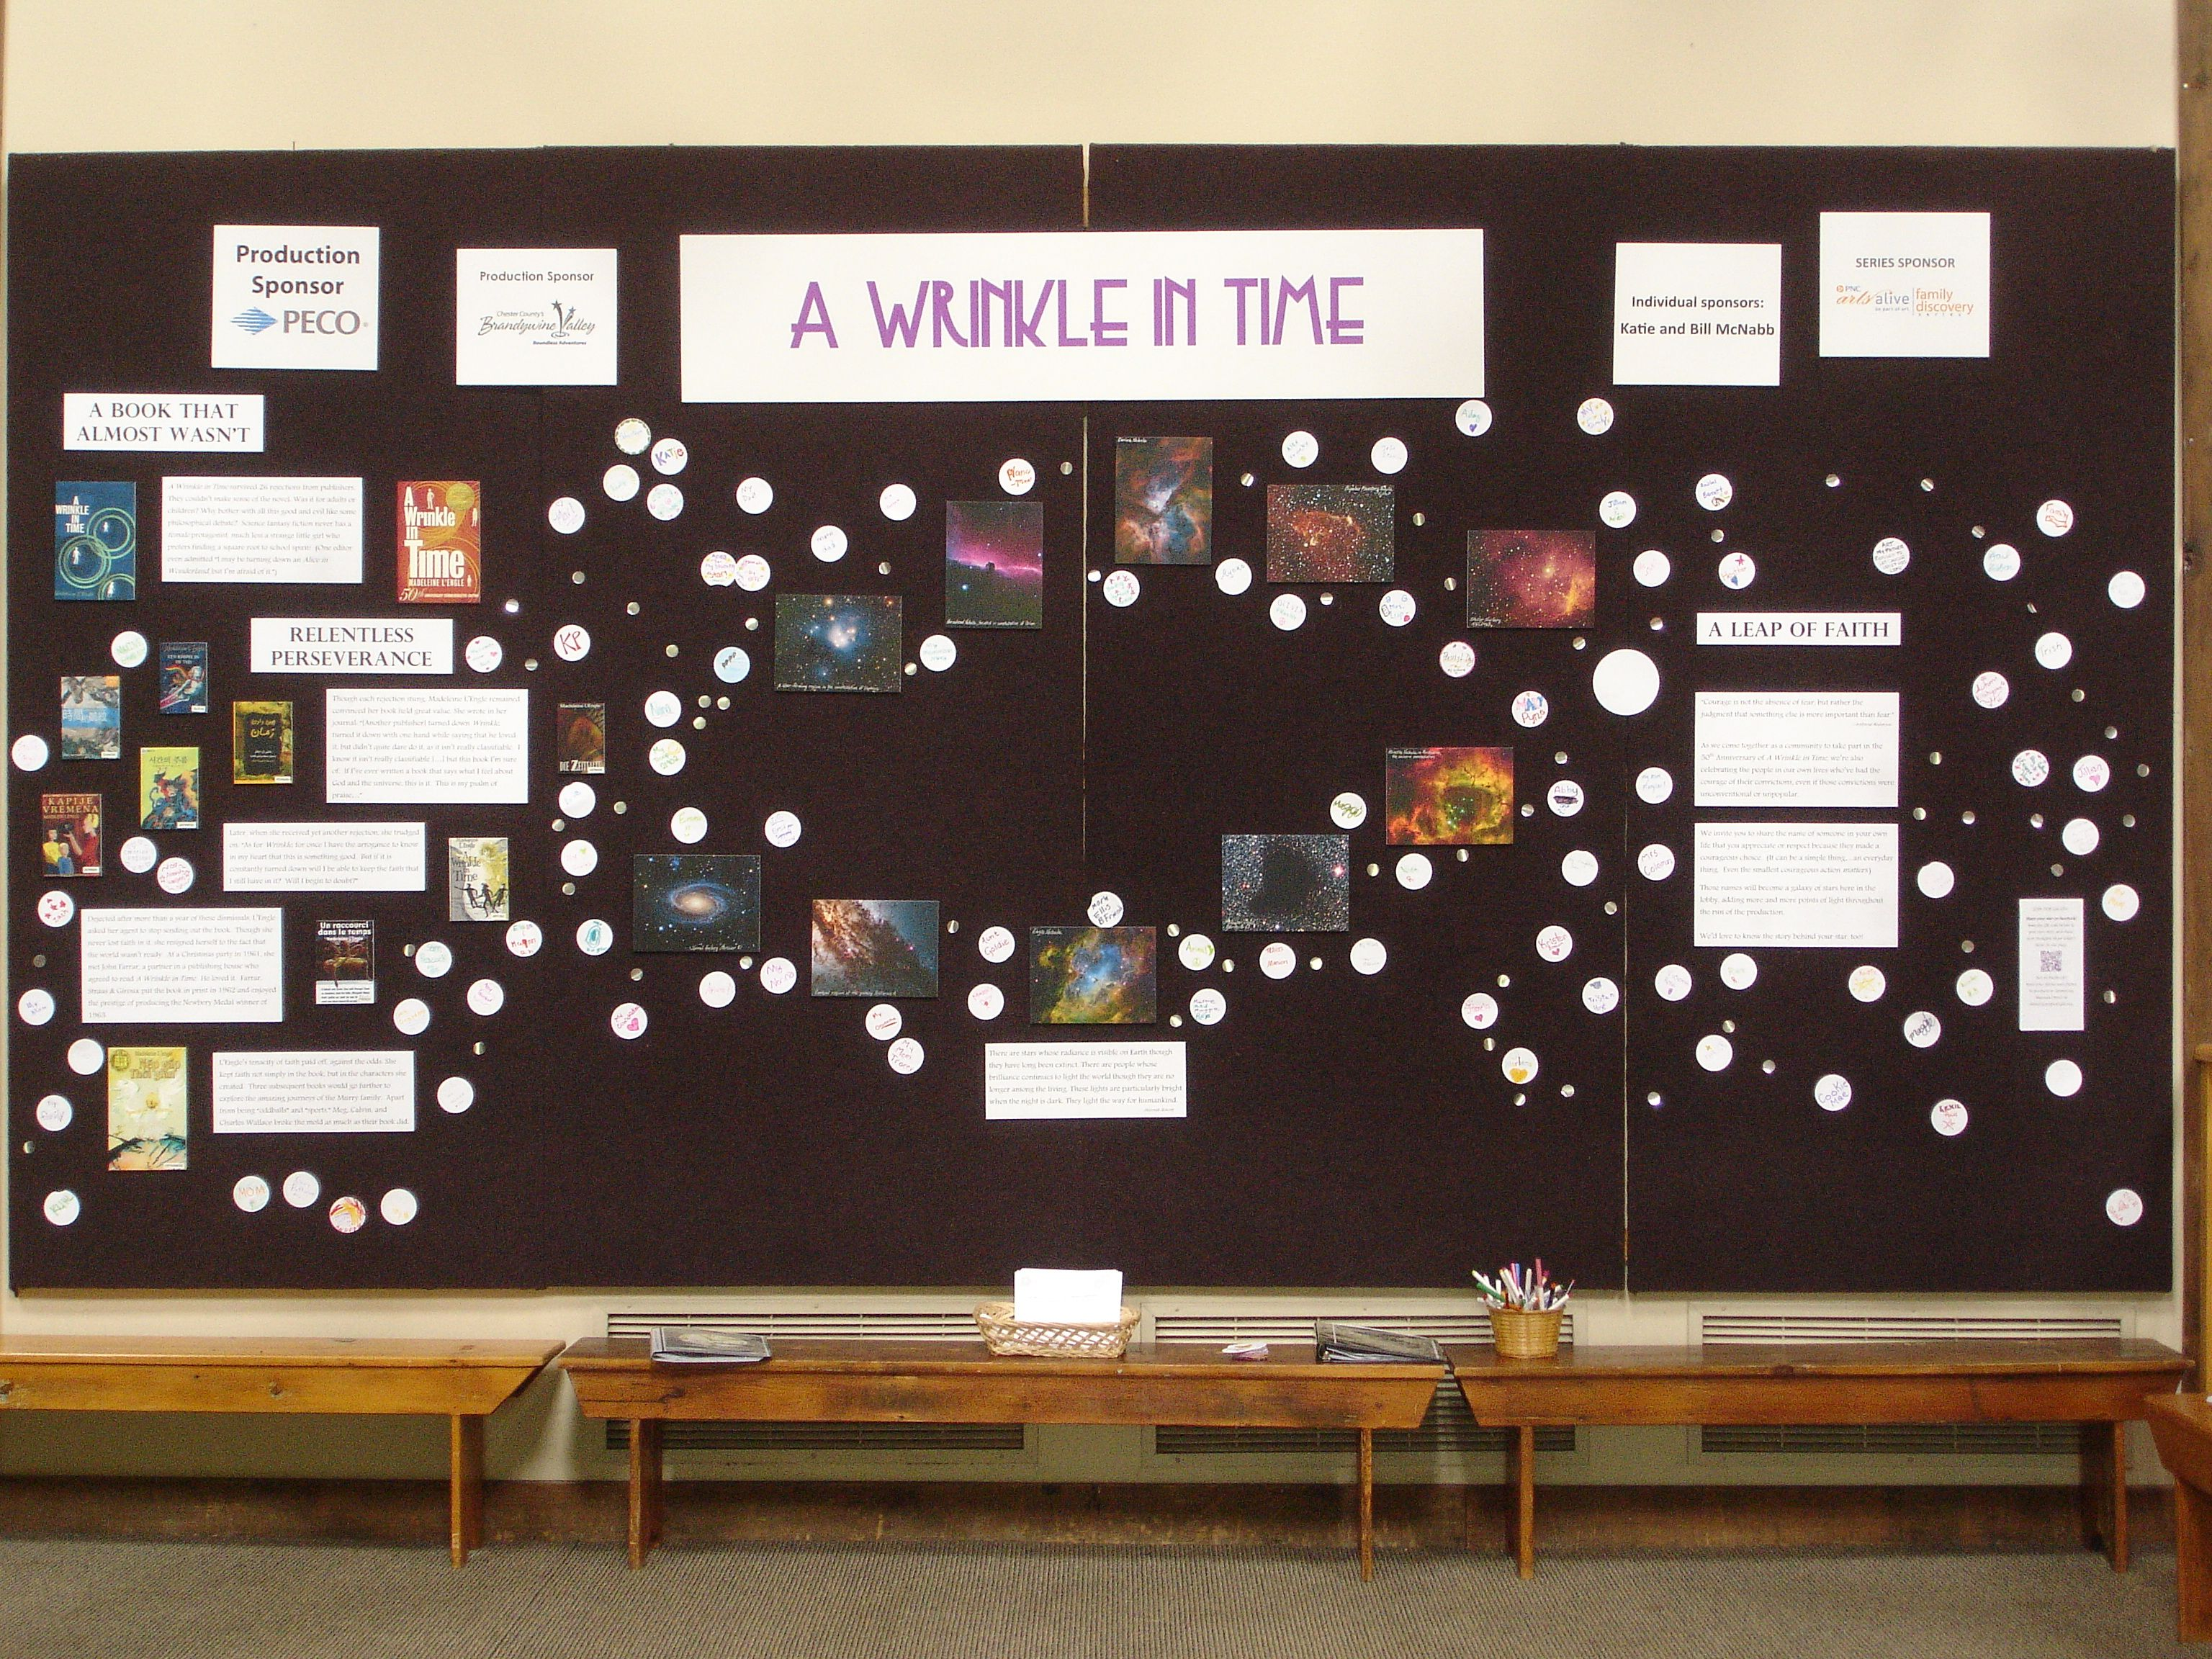 Fighters Project For A Wrinkle In Time